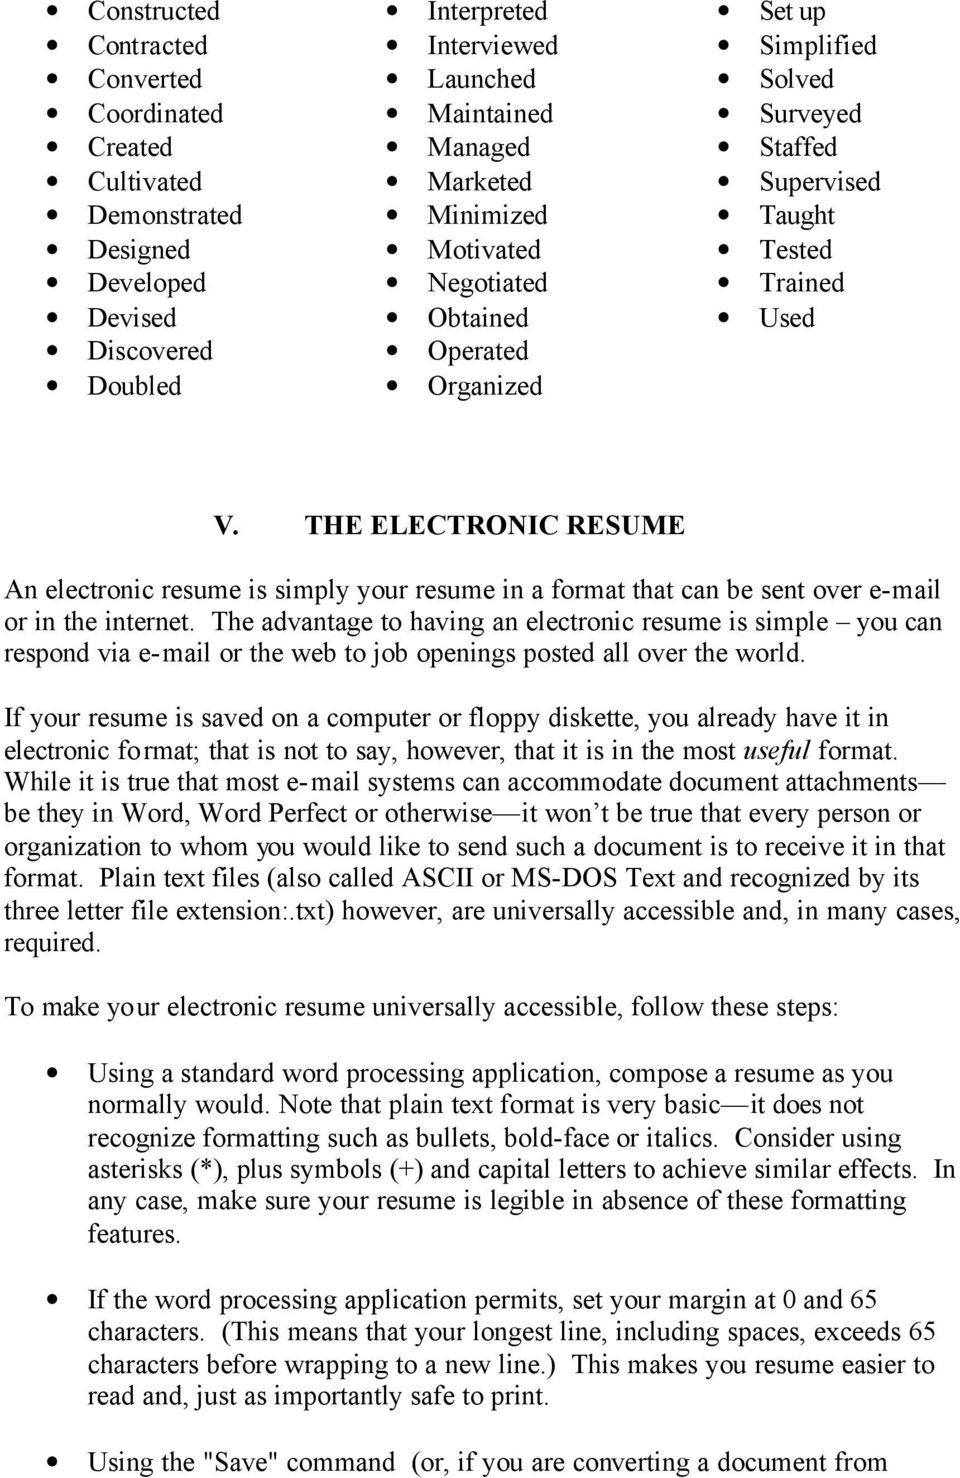 THE ELECTRONIC RESUME An electronic resume is simply your resume in a format that can be sent over e-mail or in the internet.